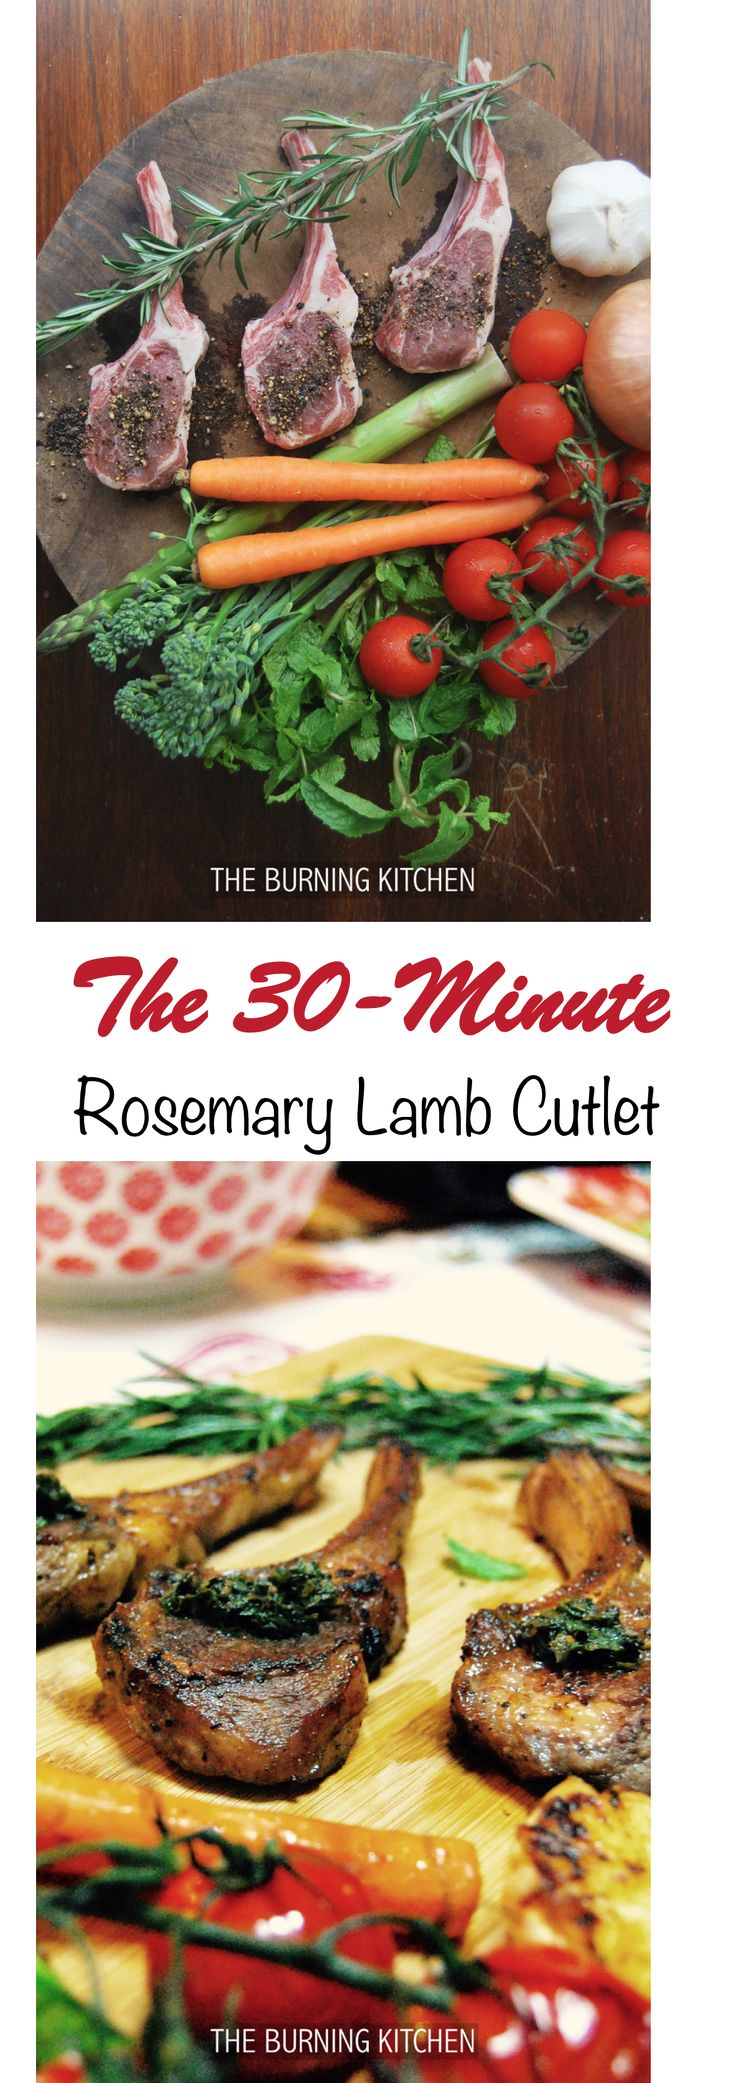 The Burning Kitchen | Pan-fried Rosemary Lamb Cutlets that can be prepared in just 30 minutes!